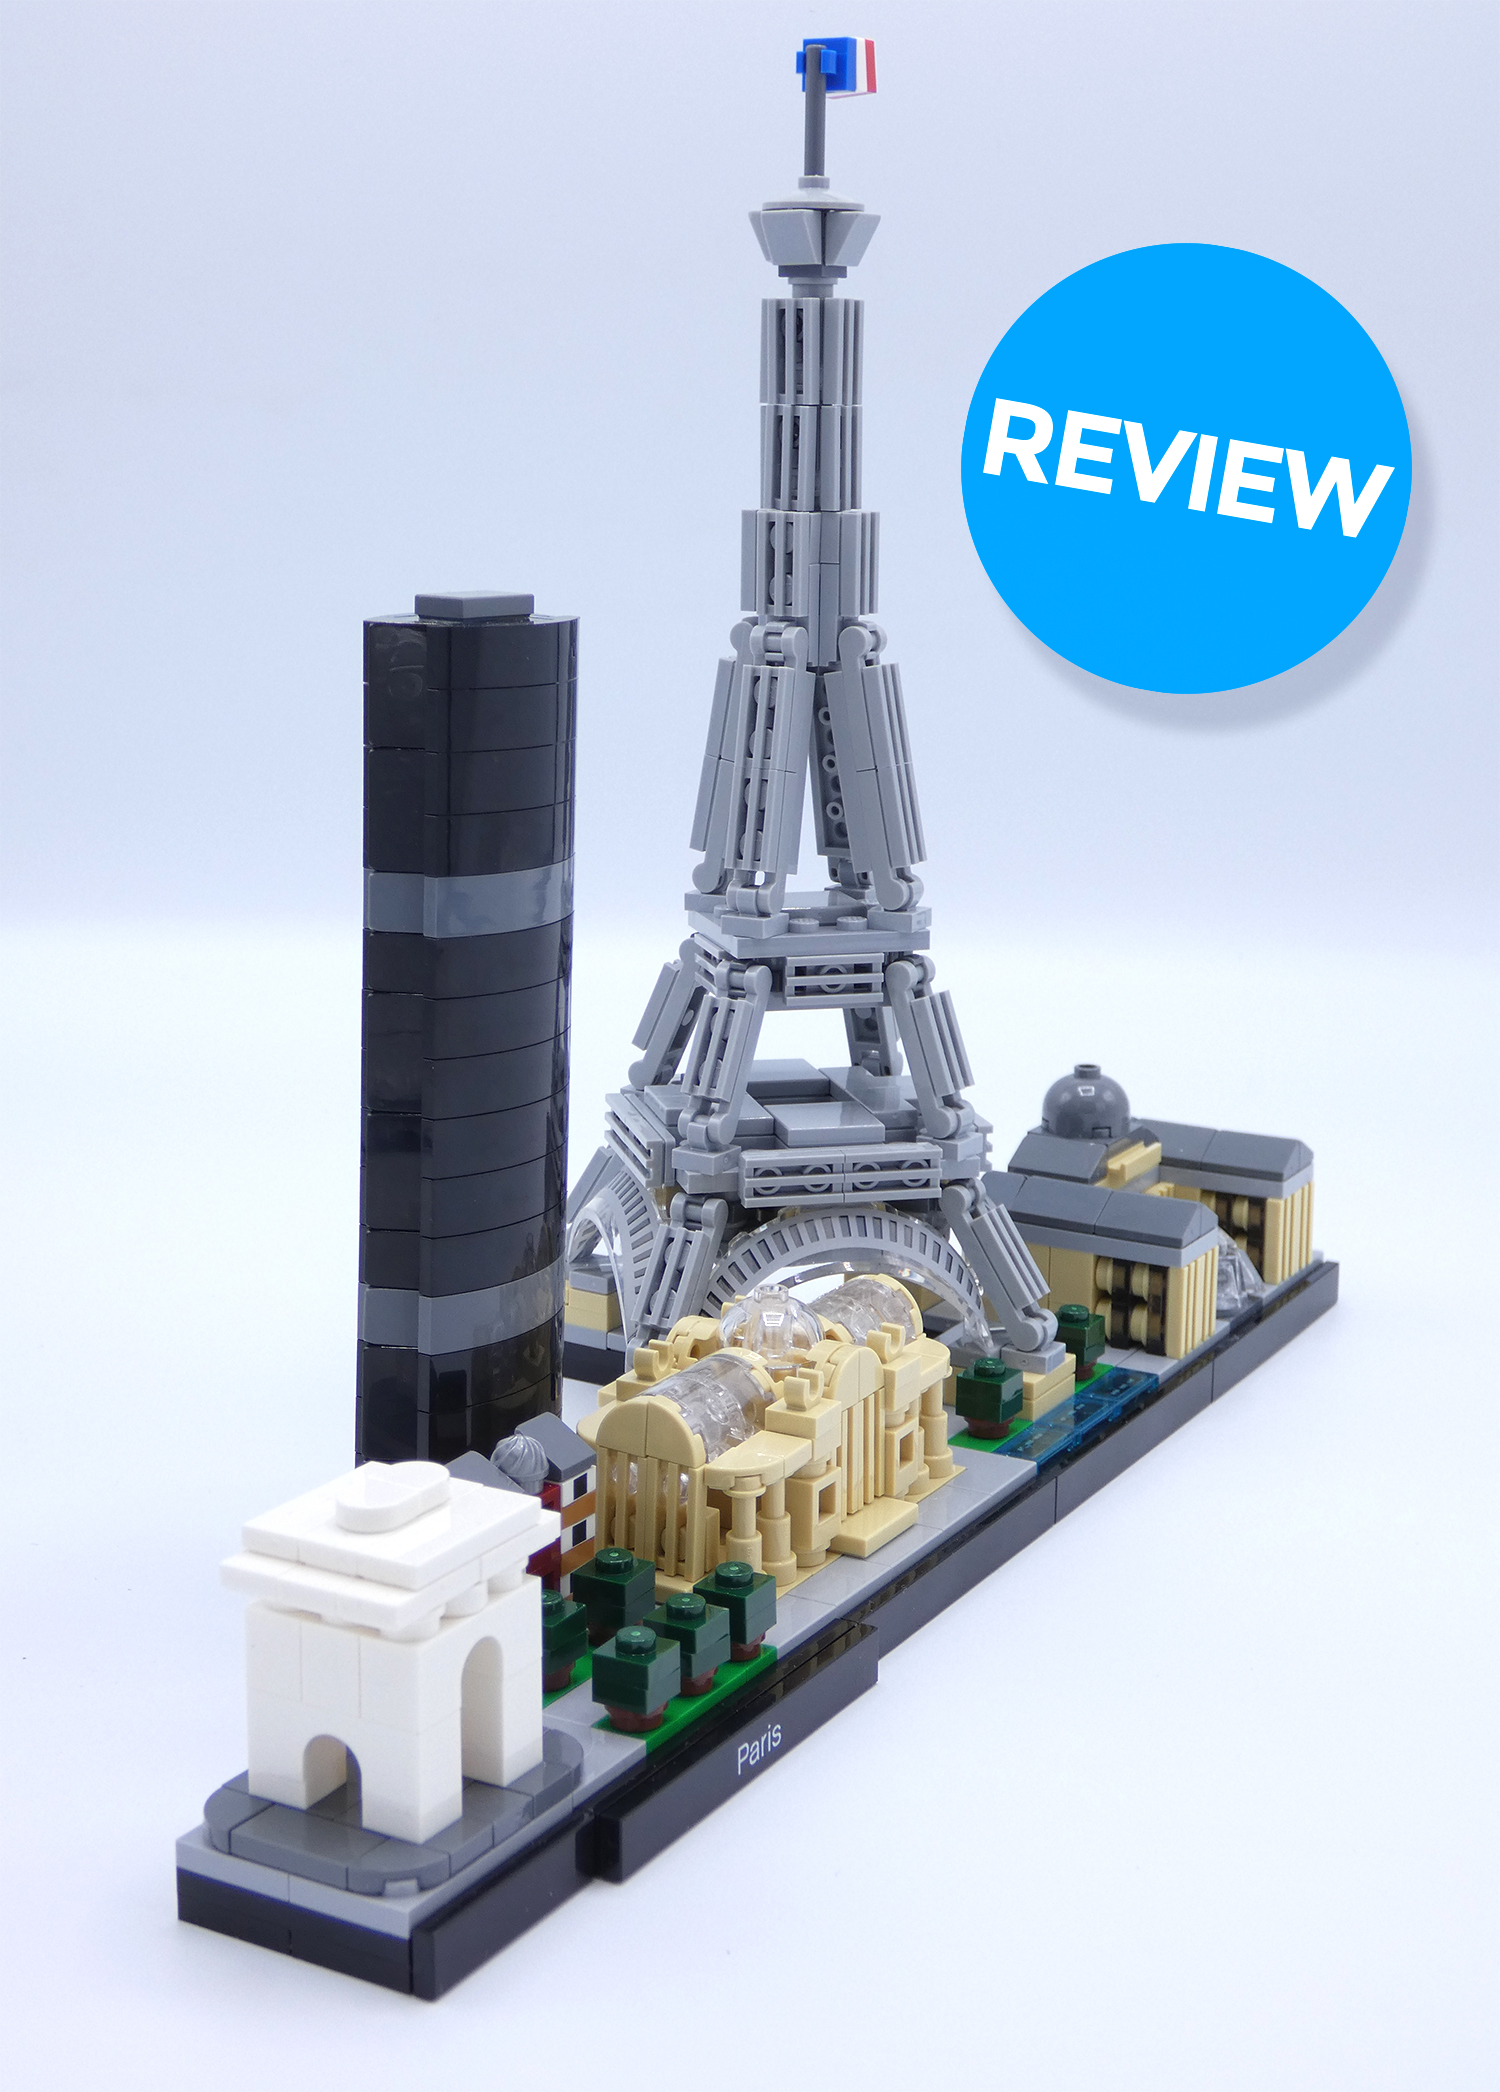 Review LEGO 21044 Parijs